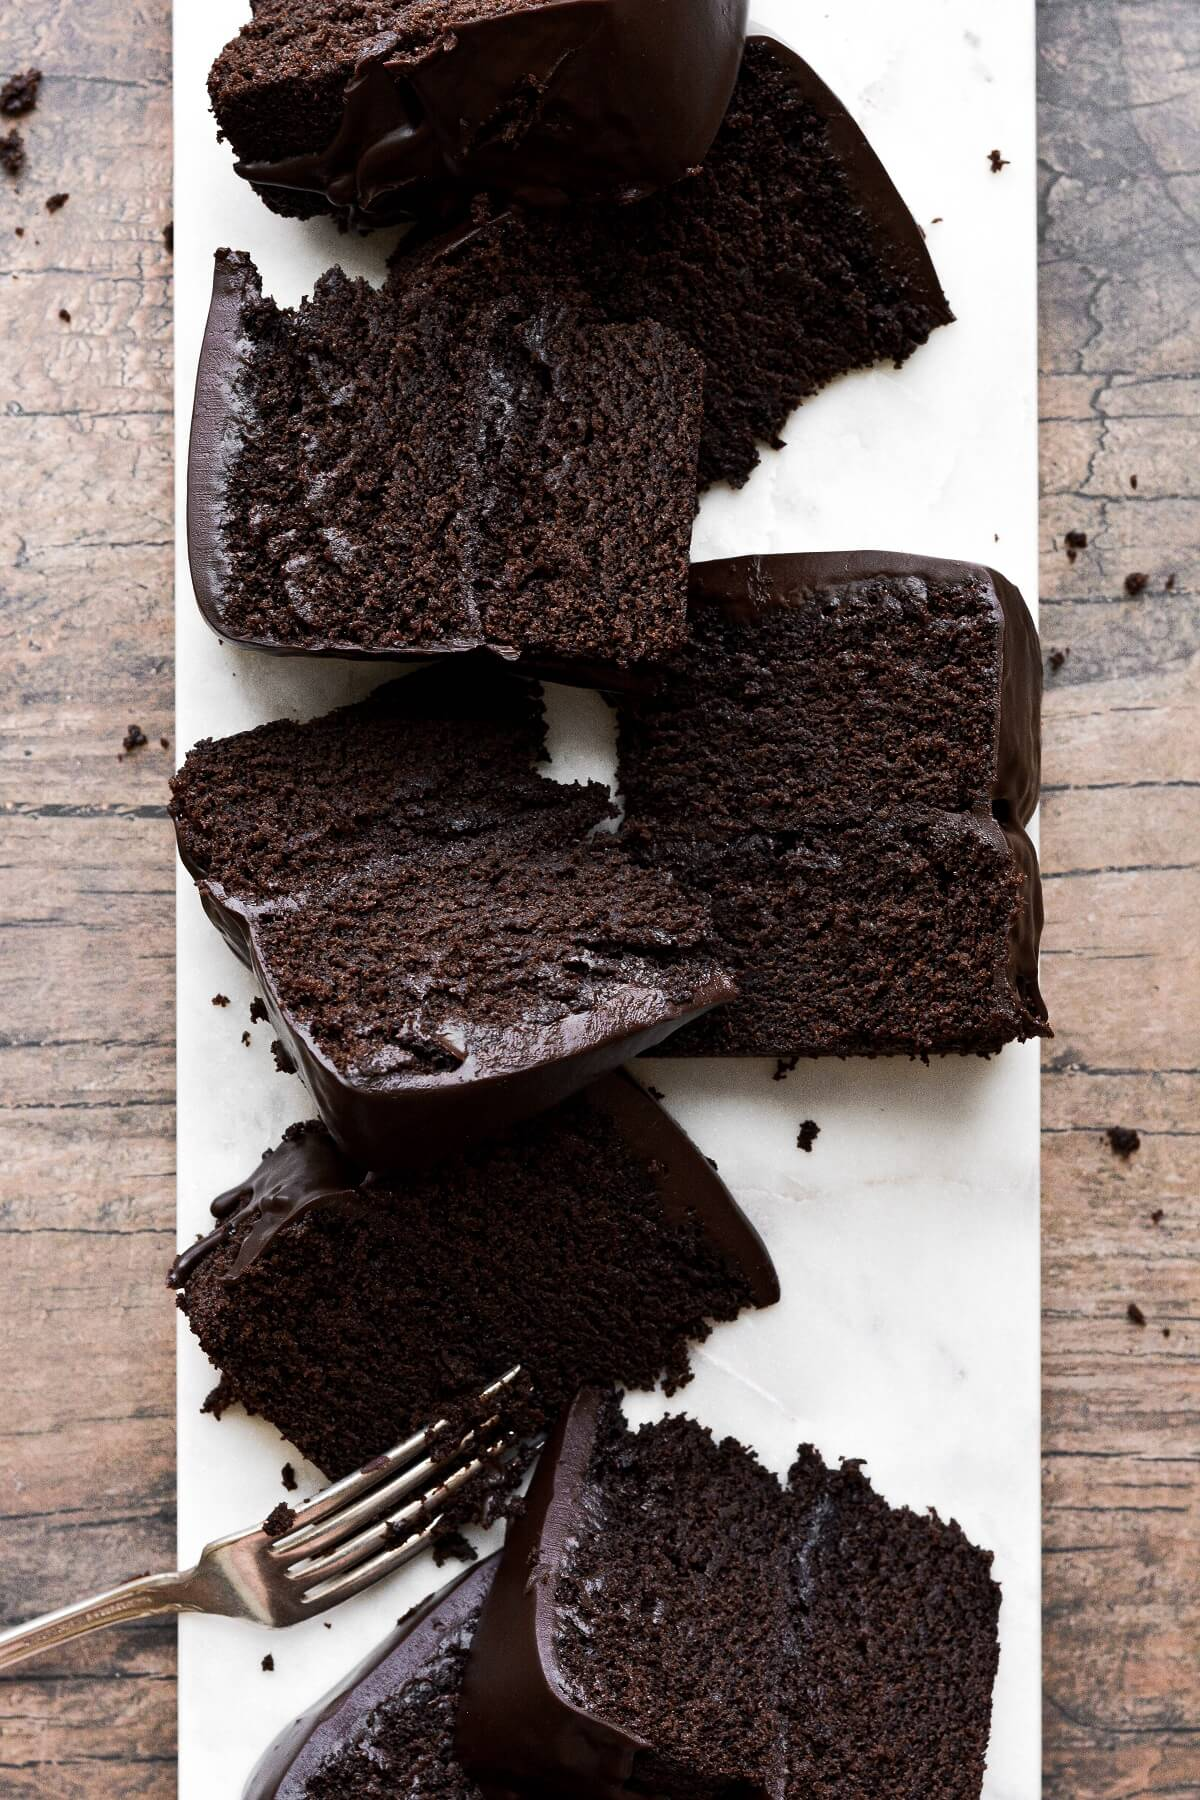 Slices of chocolate fudge cake on a white marble board.